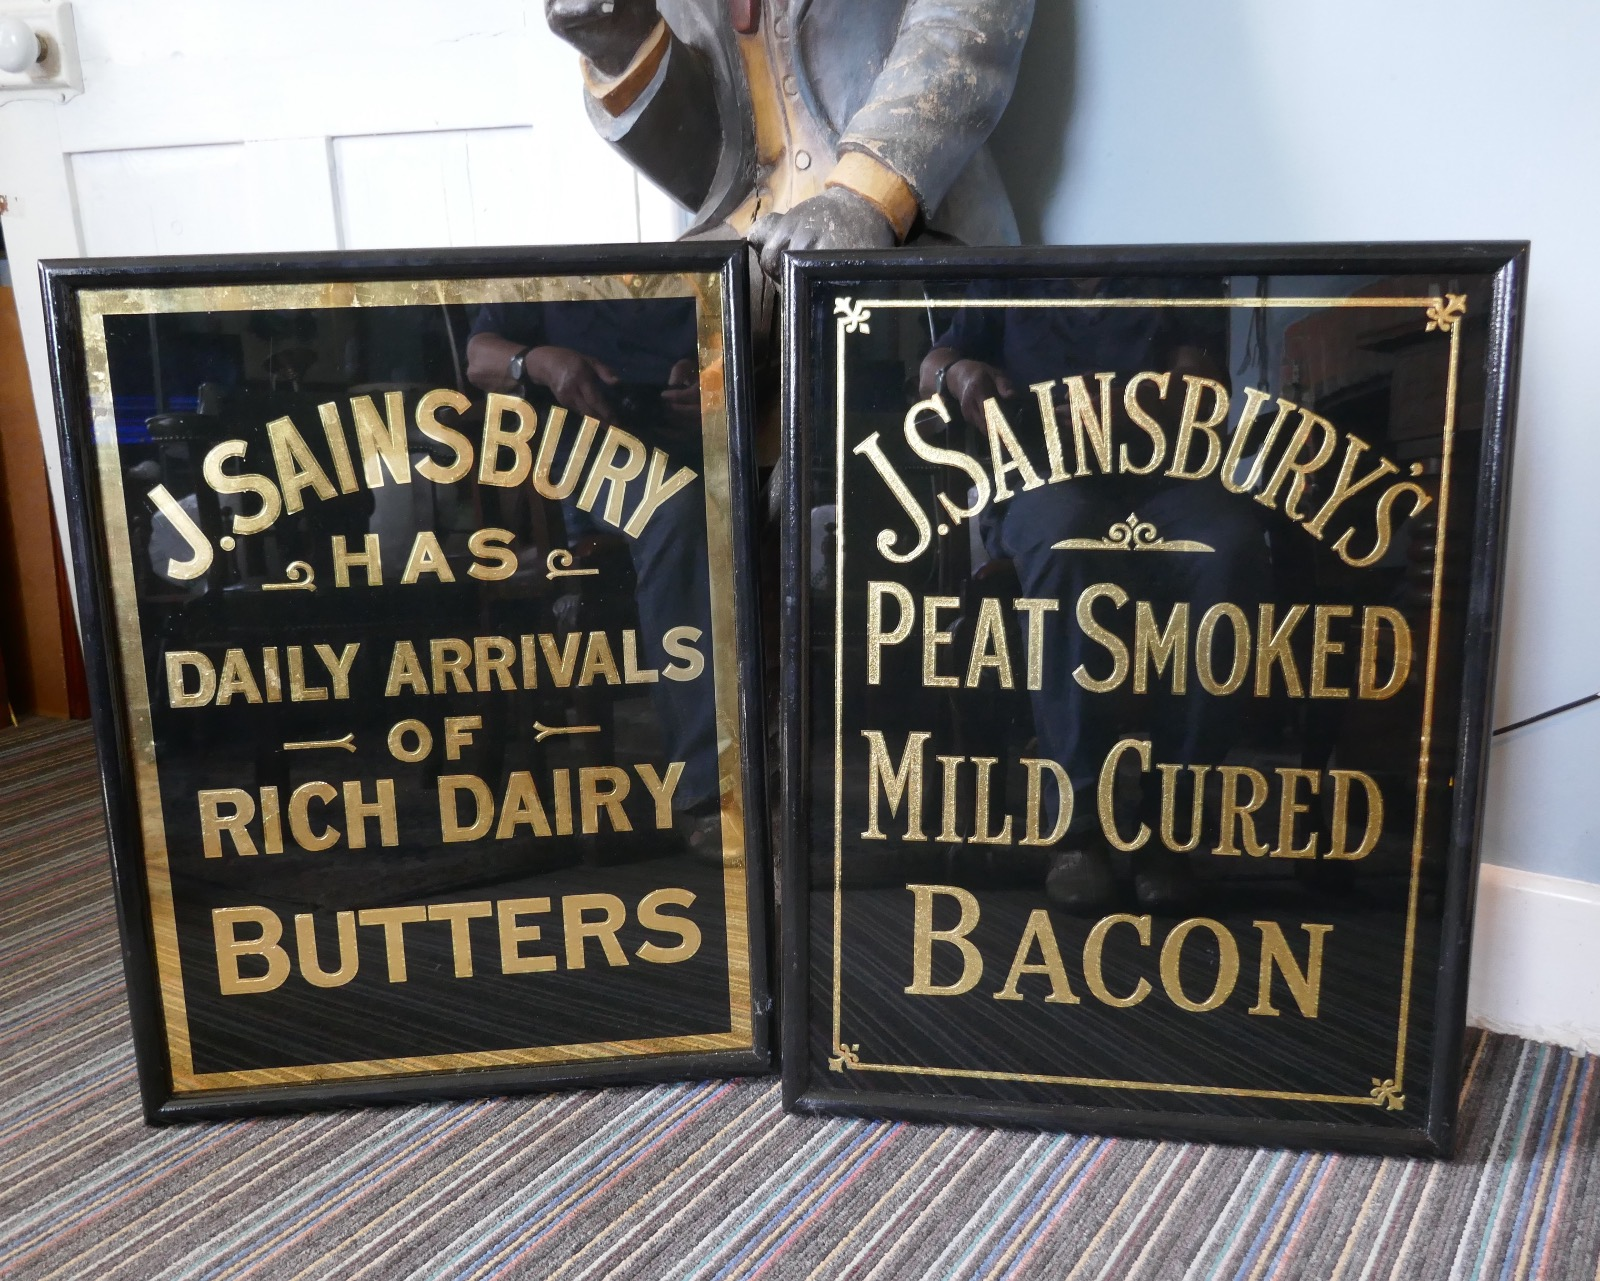 Art Deco J S Sainsbury S Bacon Advertising Mirror Sign In Black Gold Kw82 La109339 Loveantiques Com